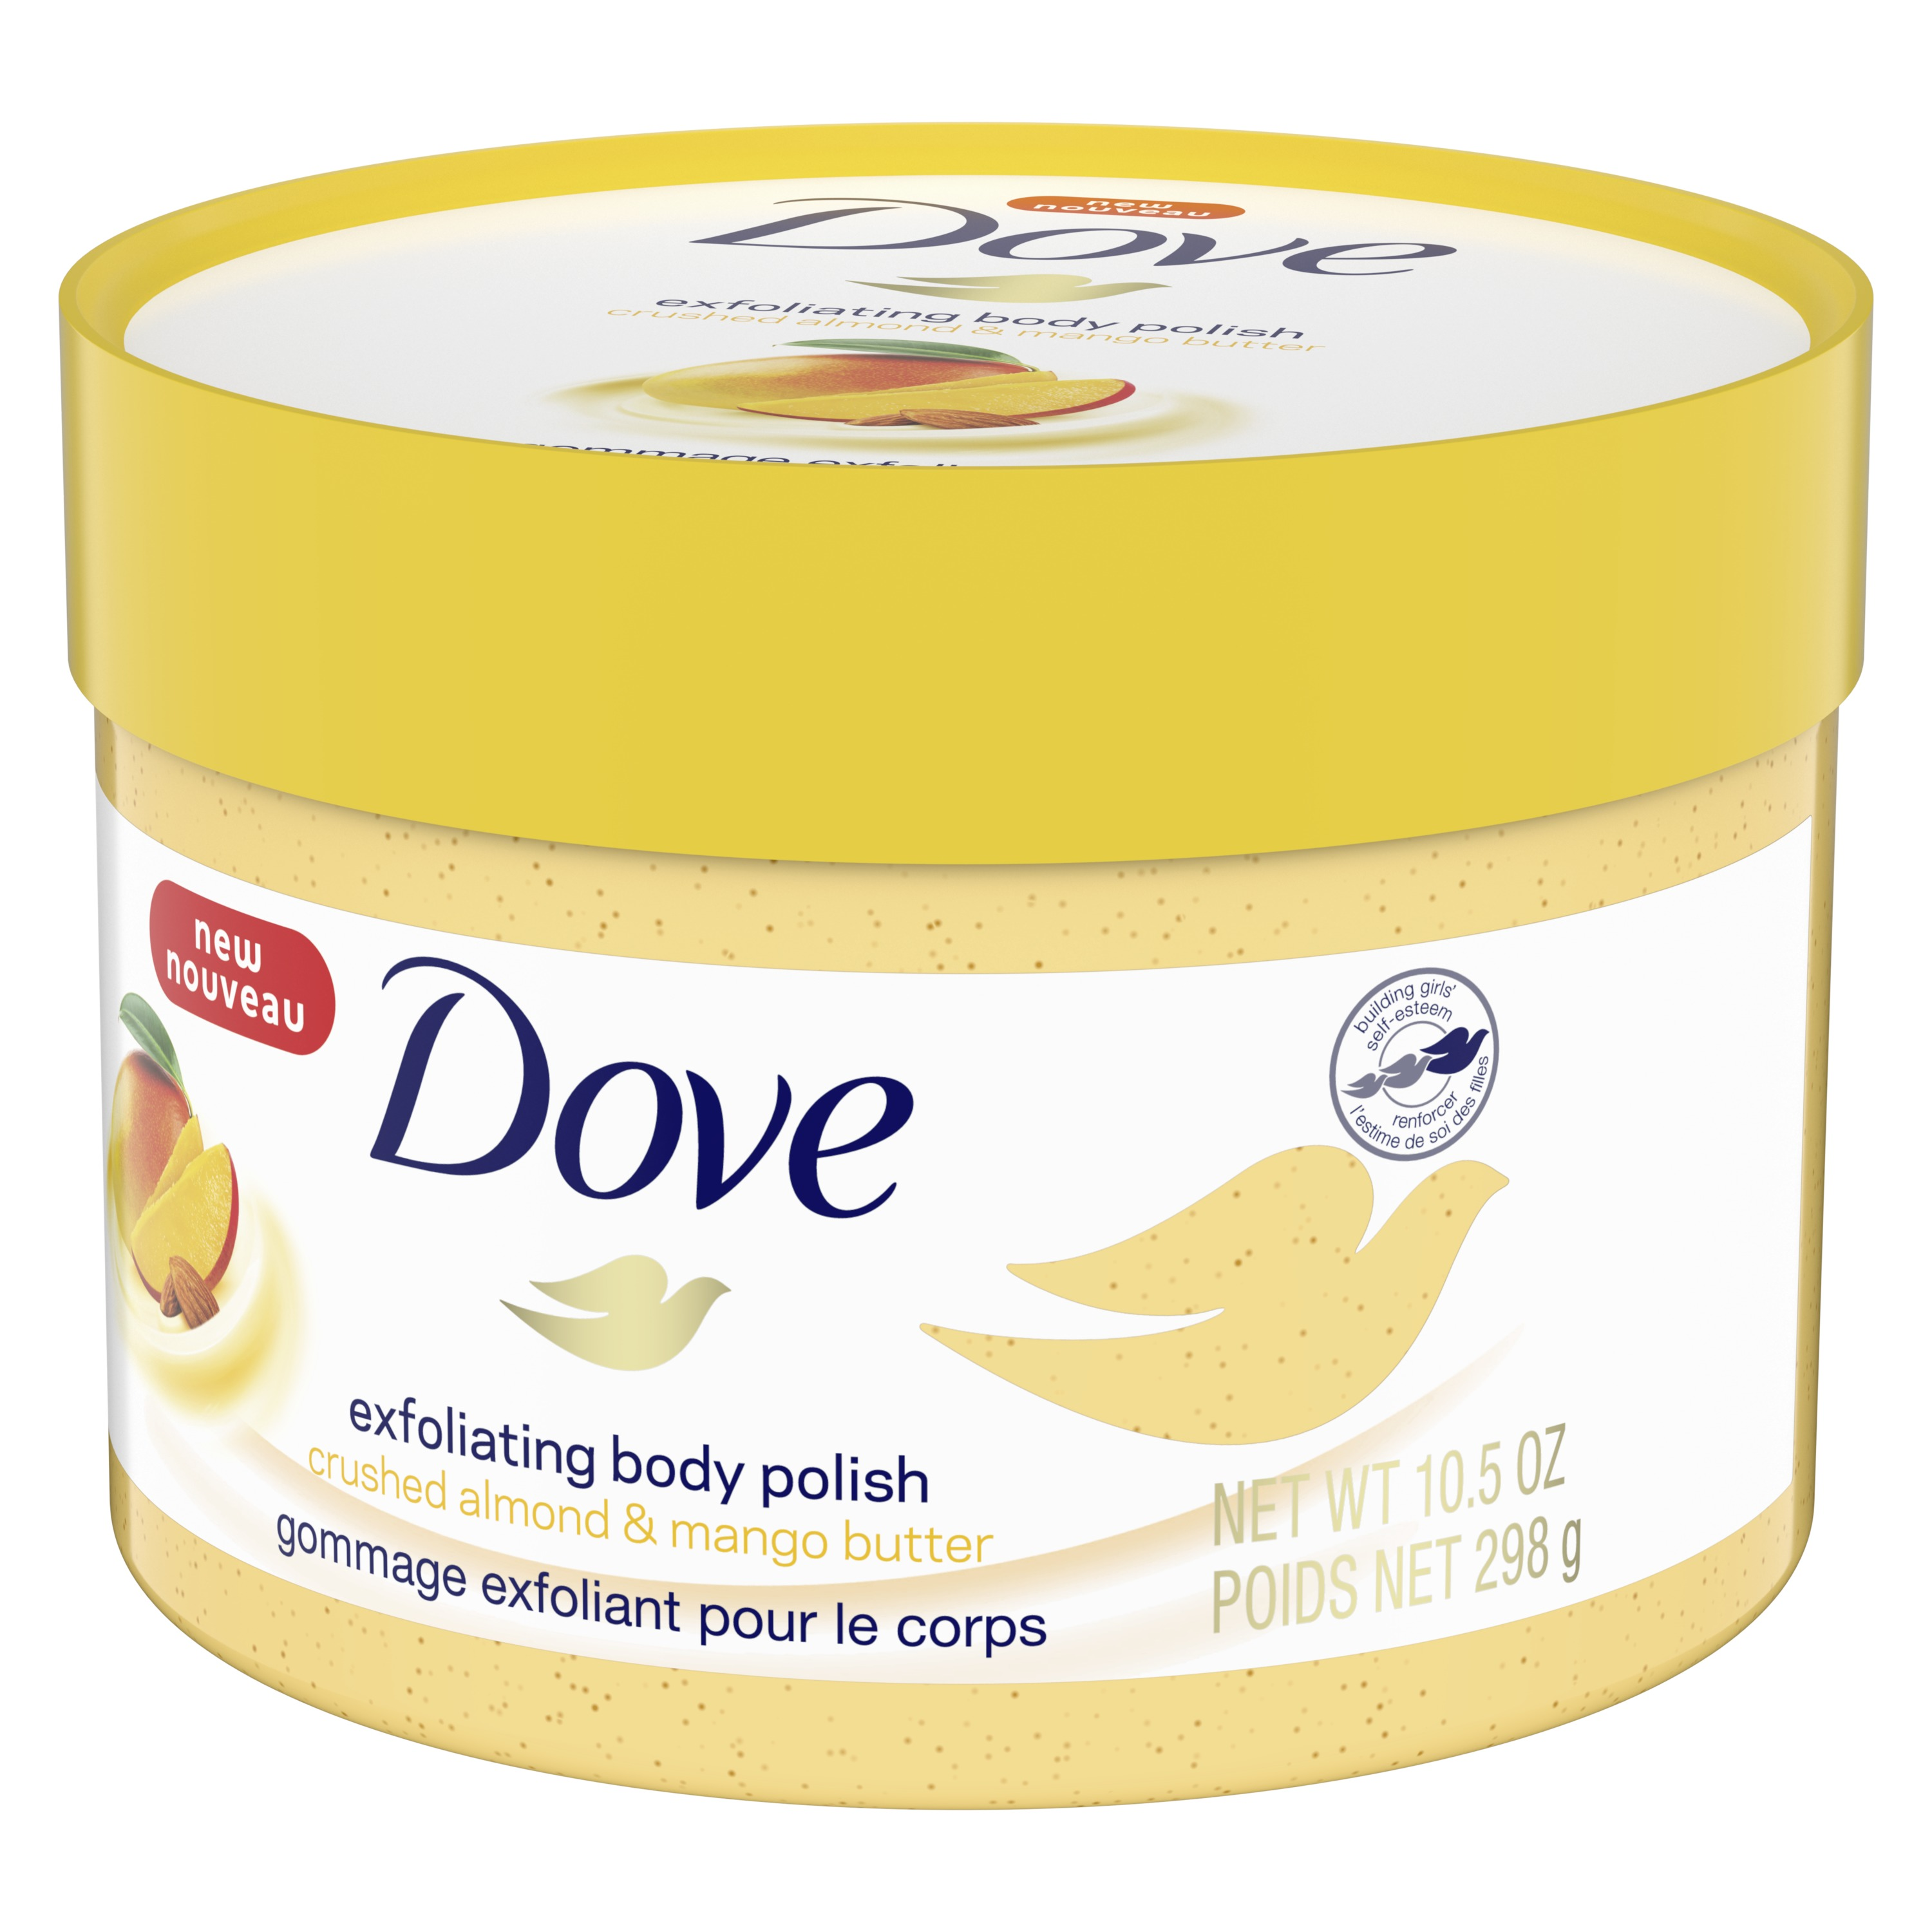 Dove Exfoliating Body Polish Crushed Almond And Mango Butter 10 5 Oz Walmart Com Walmart Com